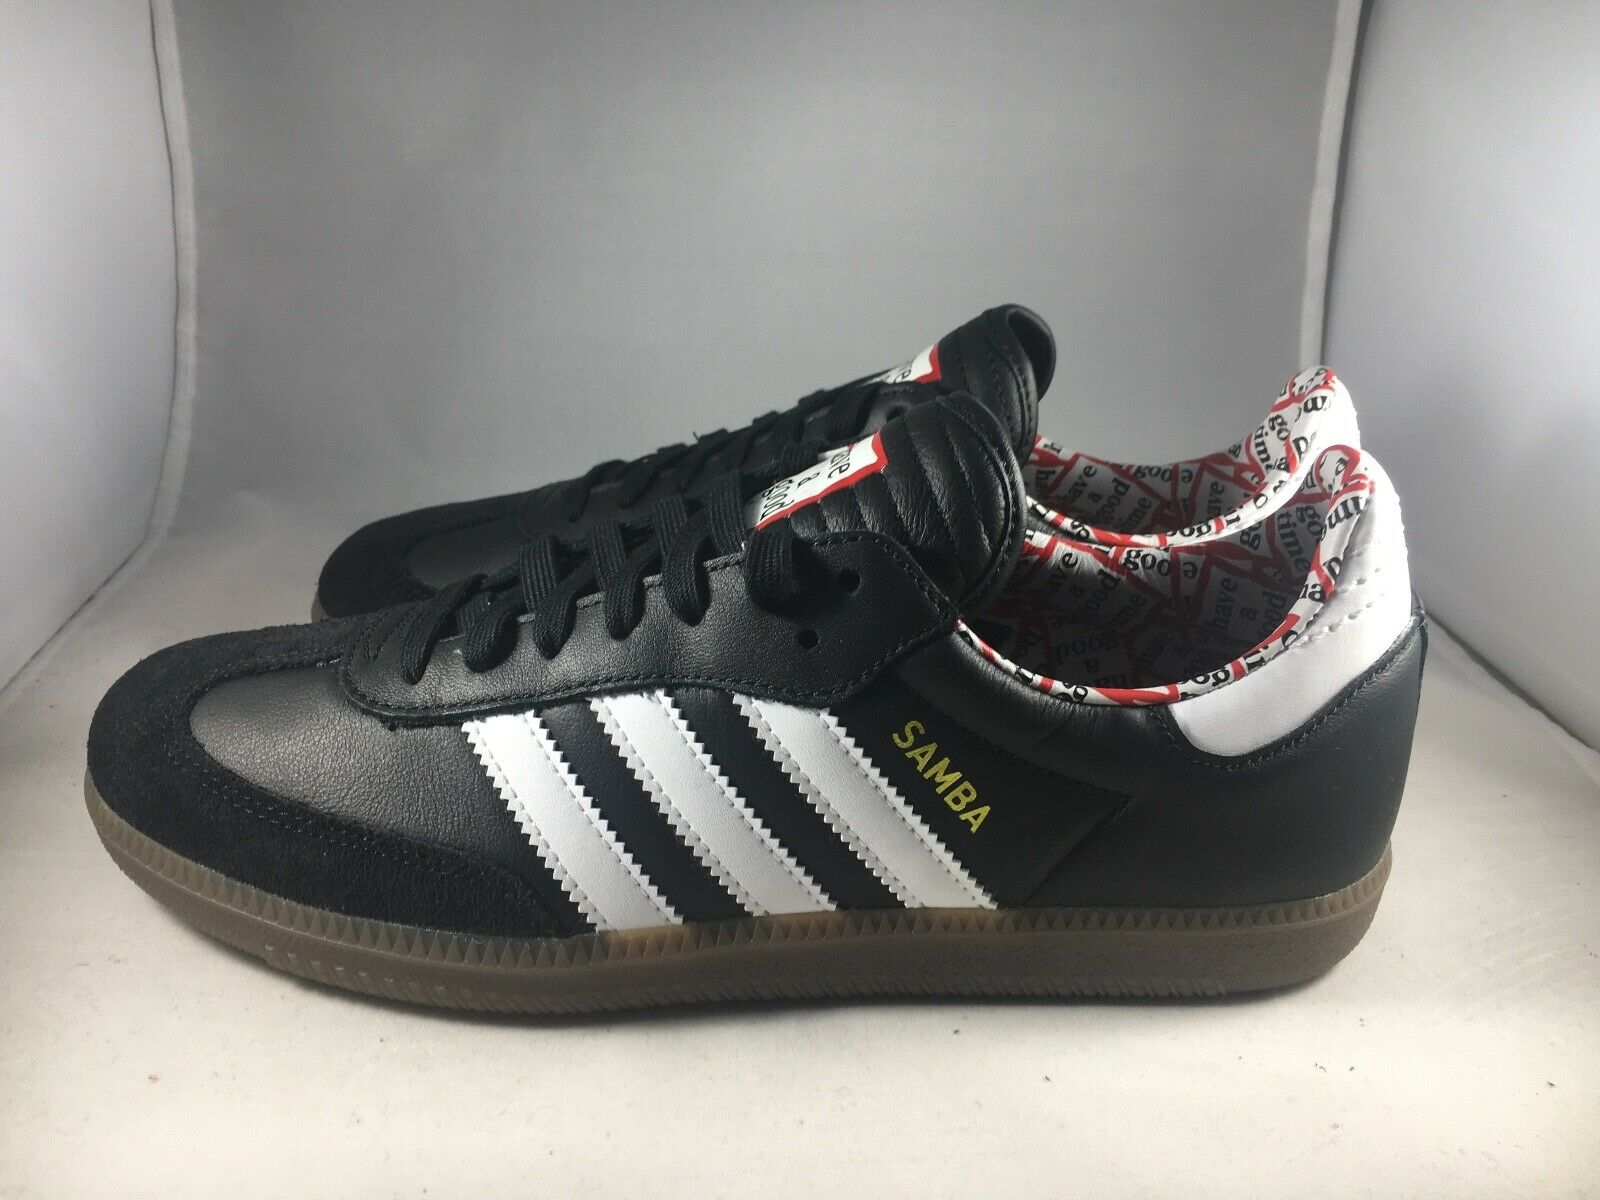 Adidas Samba HAGT Black Have A Good Time NIB BD7362